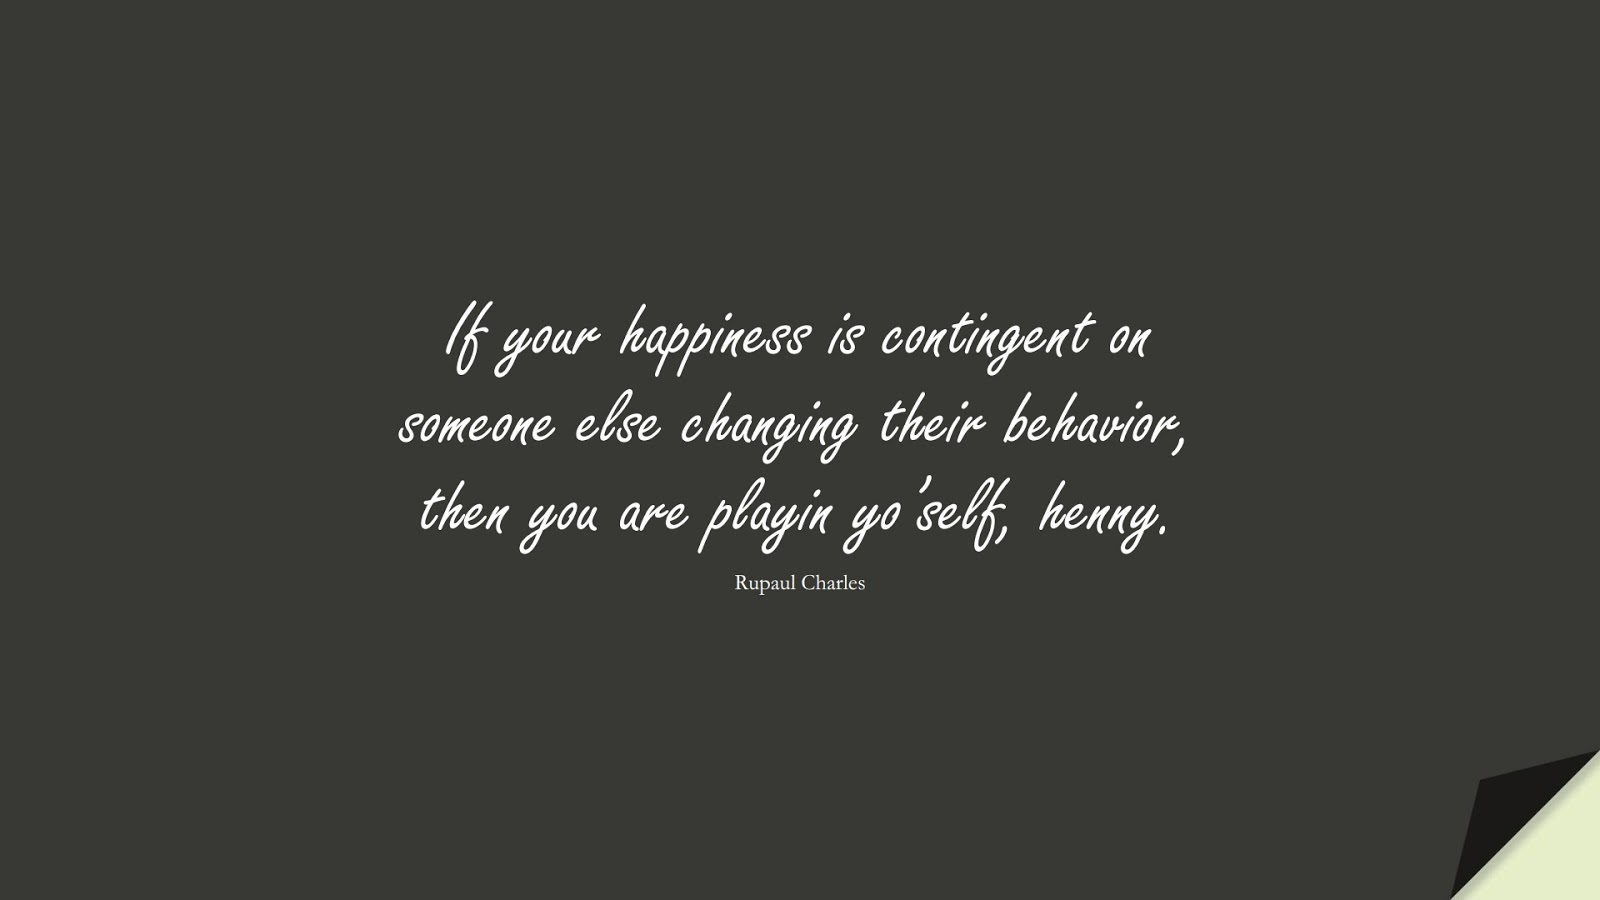 If your happiness is contingent on someone else changing their behavior, then you are playin yo'self, henny. (Rupaul Charles);  #HappinessQuotes